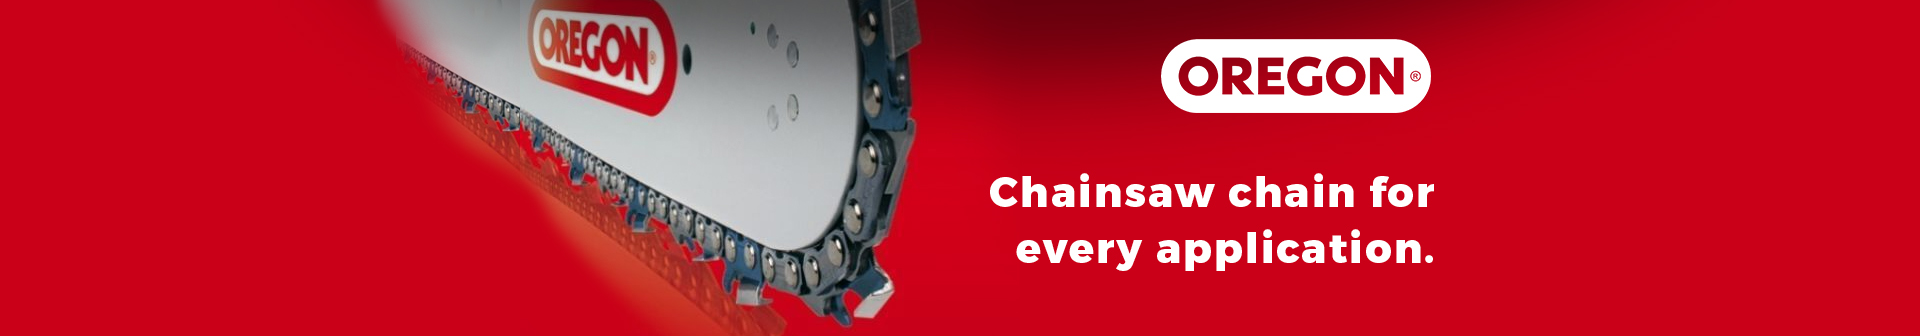 Oregon - Chainsaw chain for every application